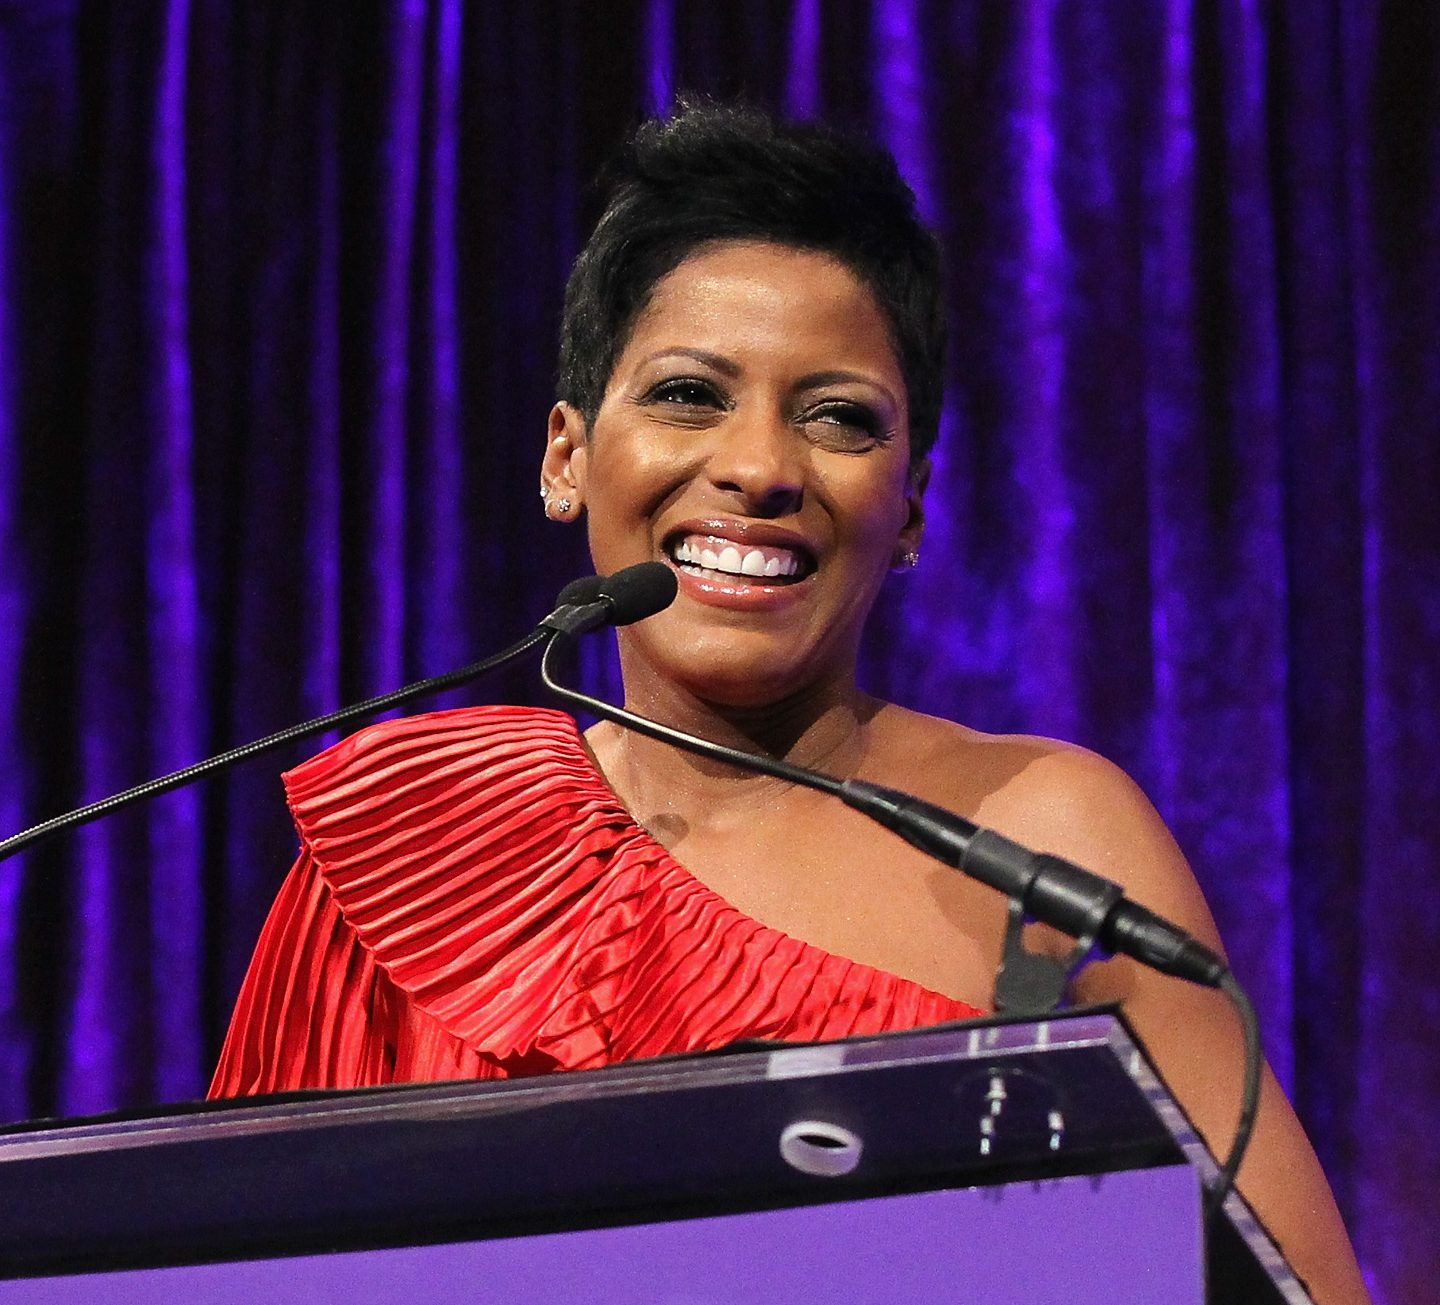 The National CARES Mentoring Movement's 2nd Annual 'For the Love of Our Children' Gala in NYC